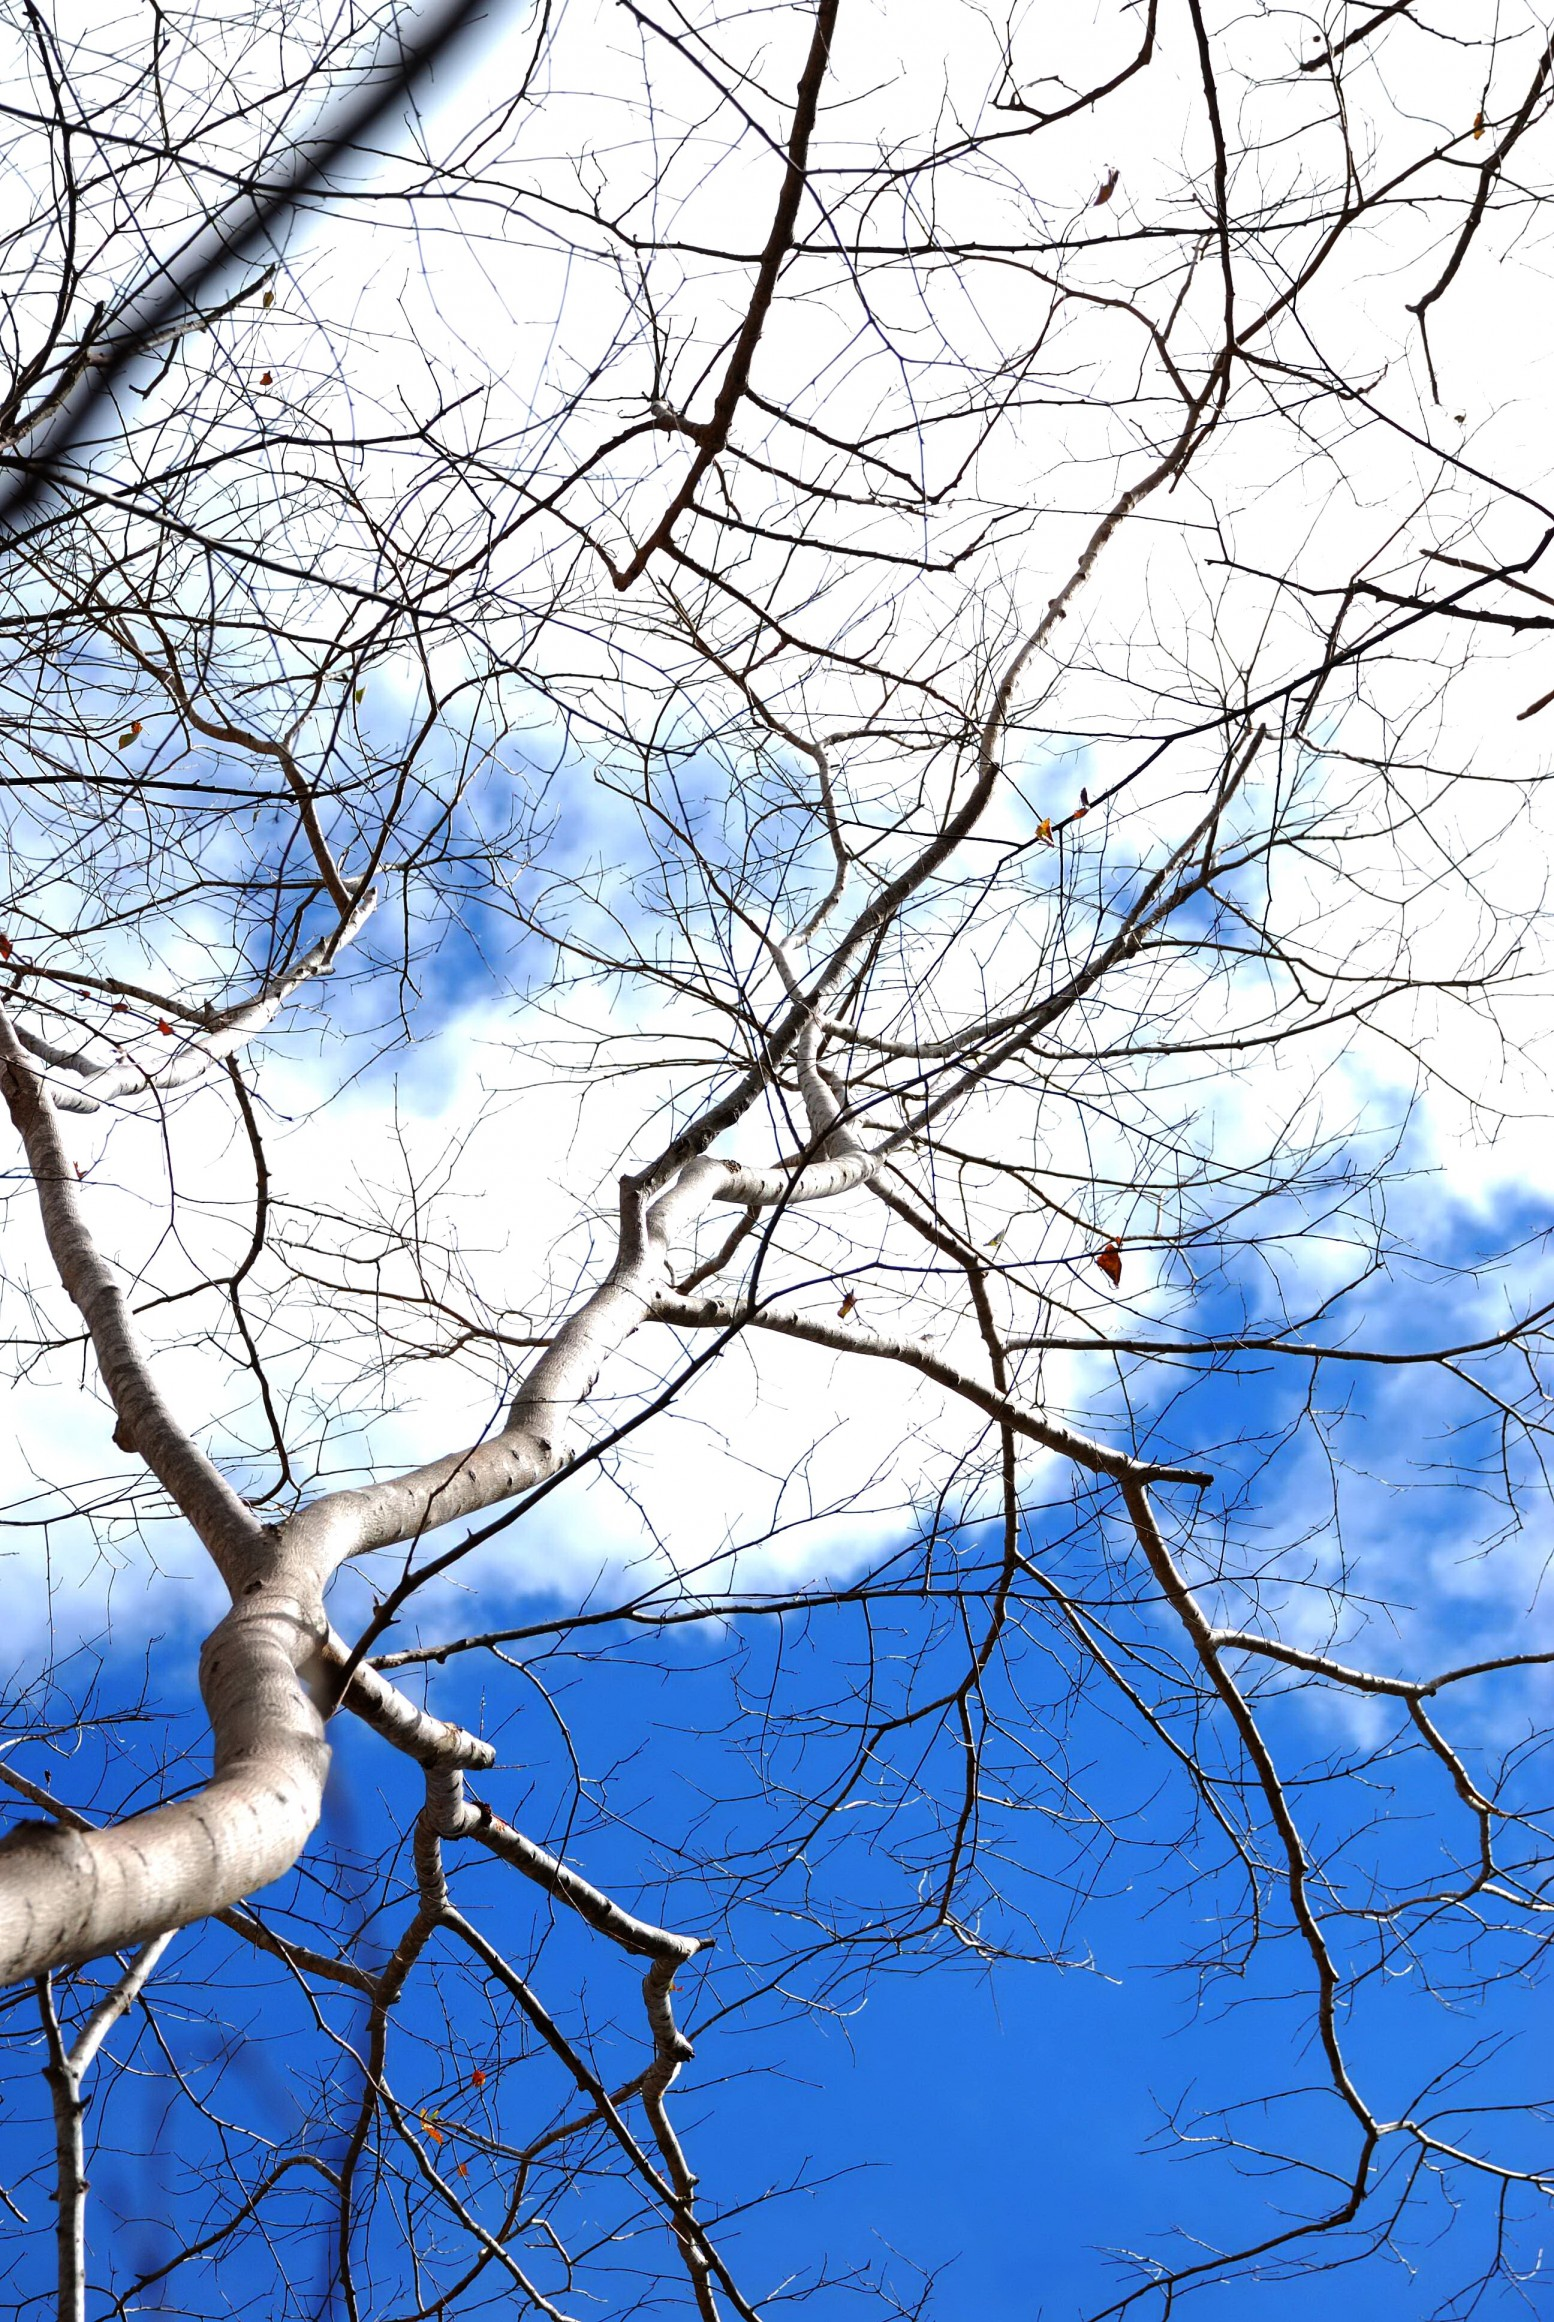 Twigs and the sky